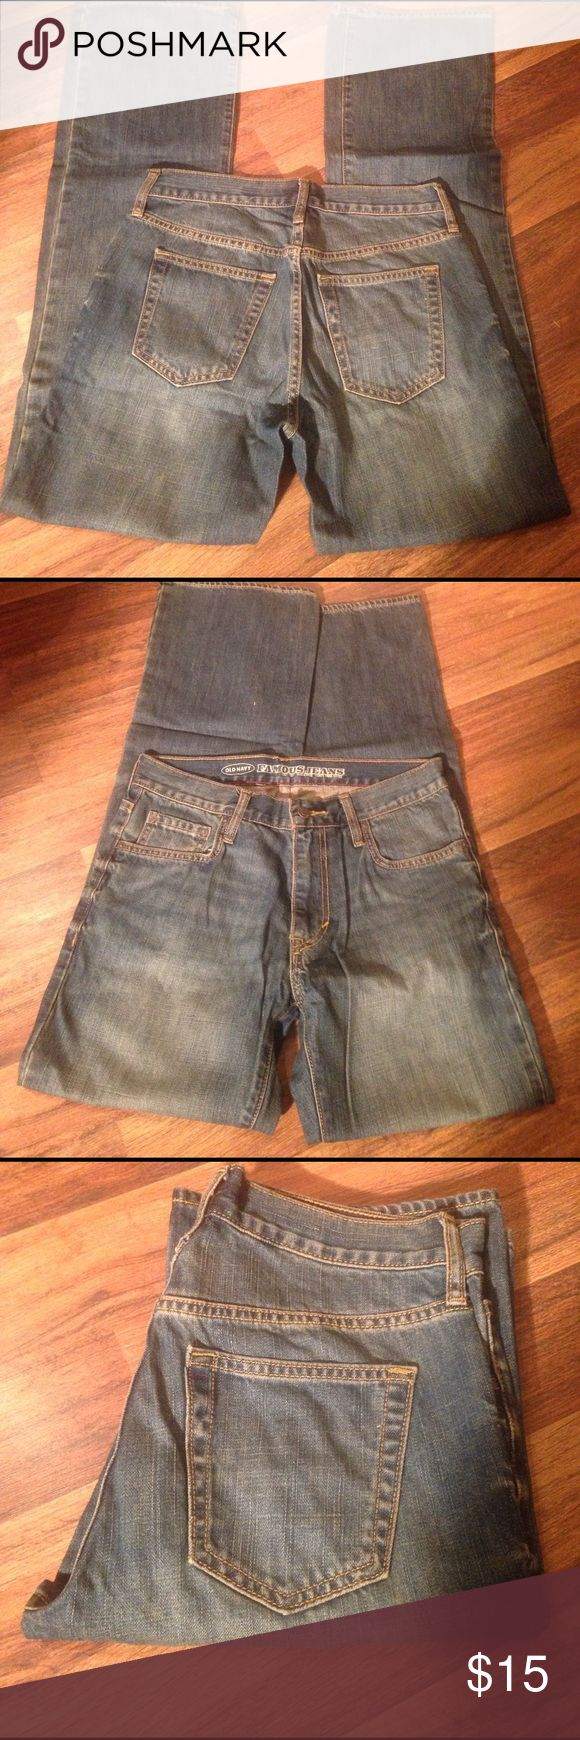 """Old navy 30-34 men's jeans Old Navy famous jeans, boot cut. Size 30-34. Medium vintage. Only worn twice. 10"""" from waist to crotch. Old Navy Jeans Bootcut"""